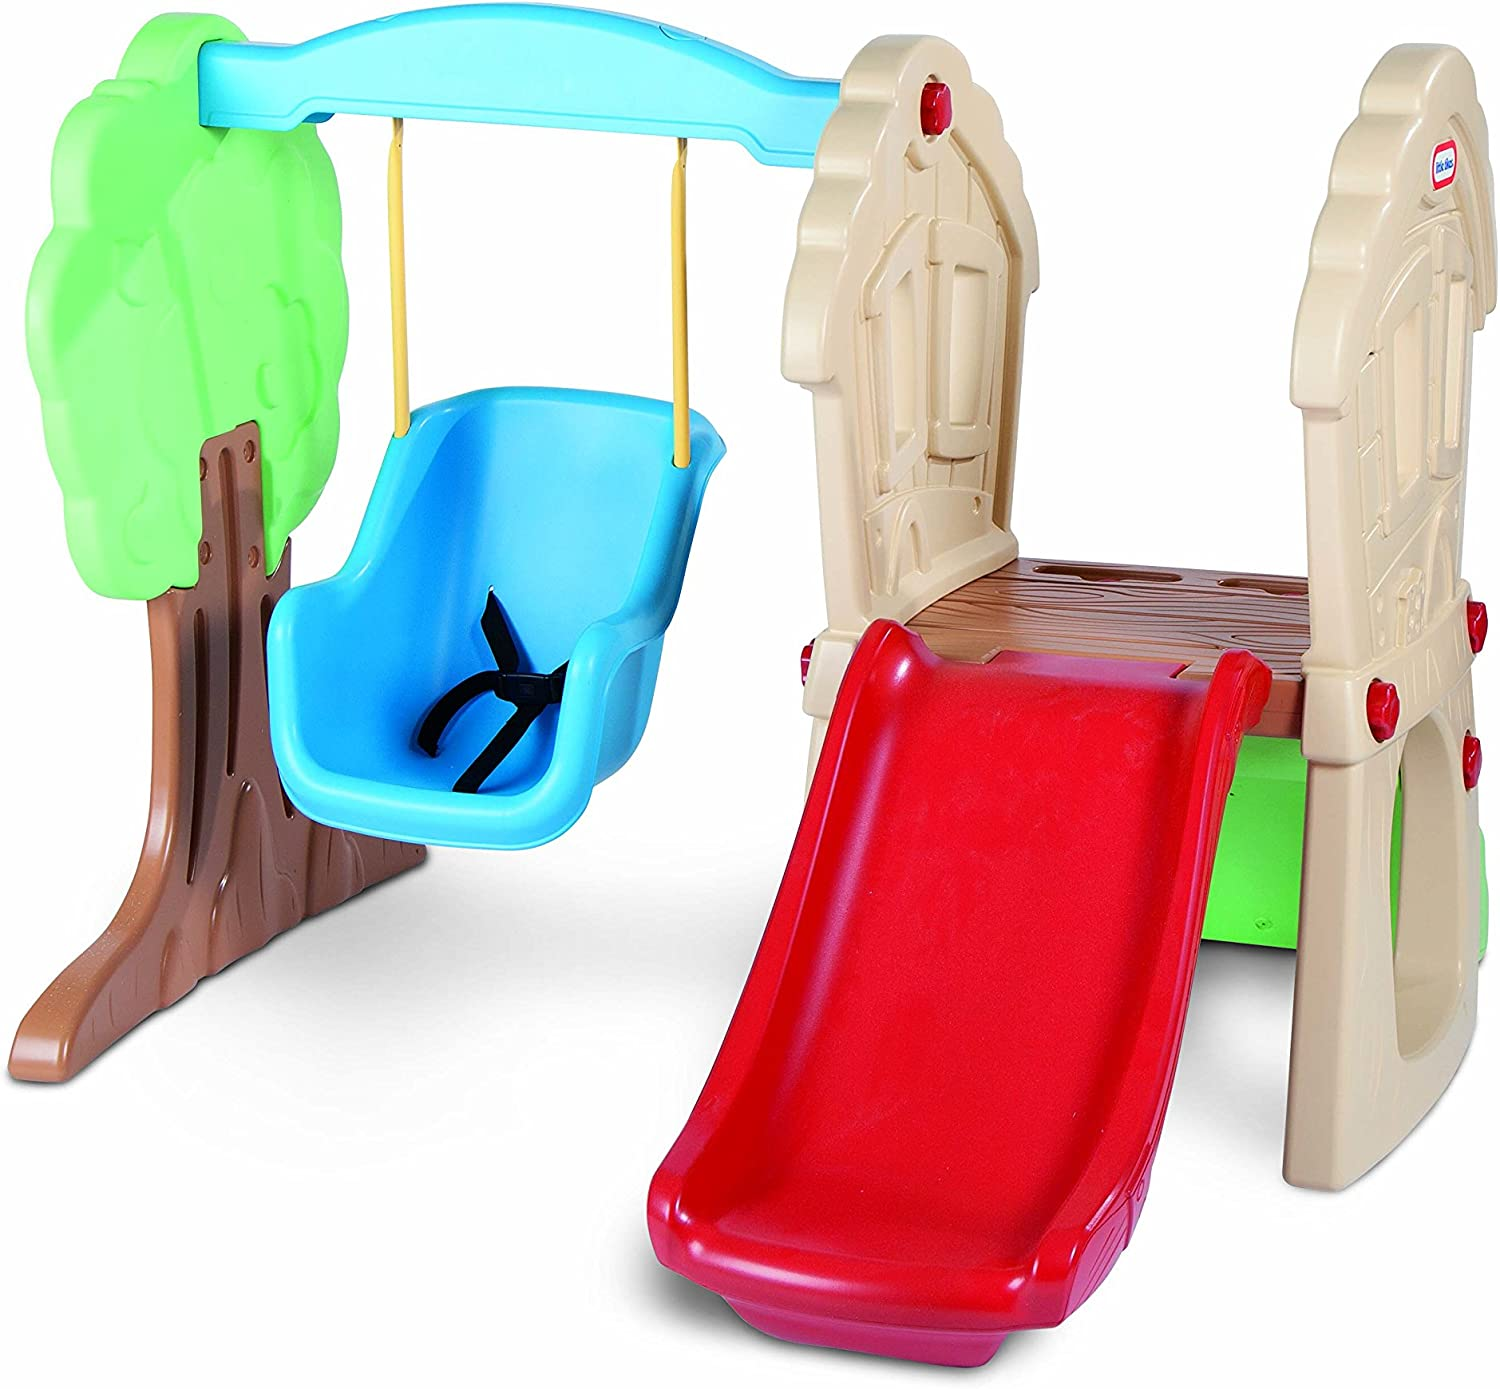 Hide and Seek – Climber and Swing